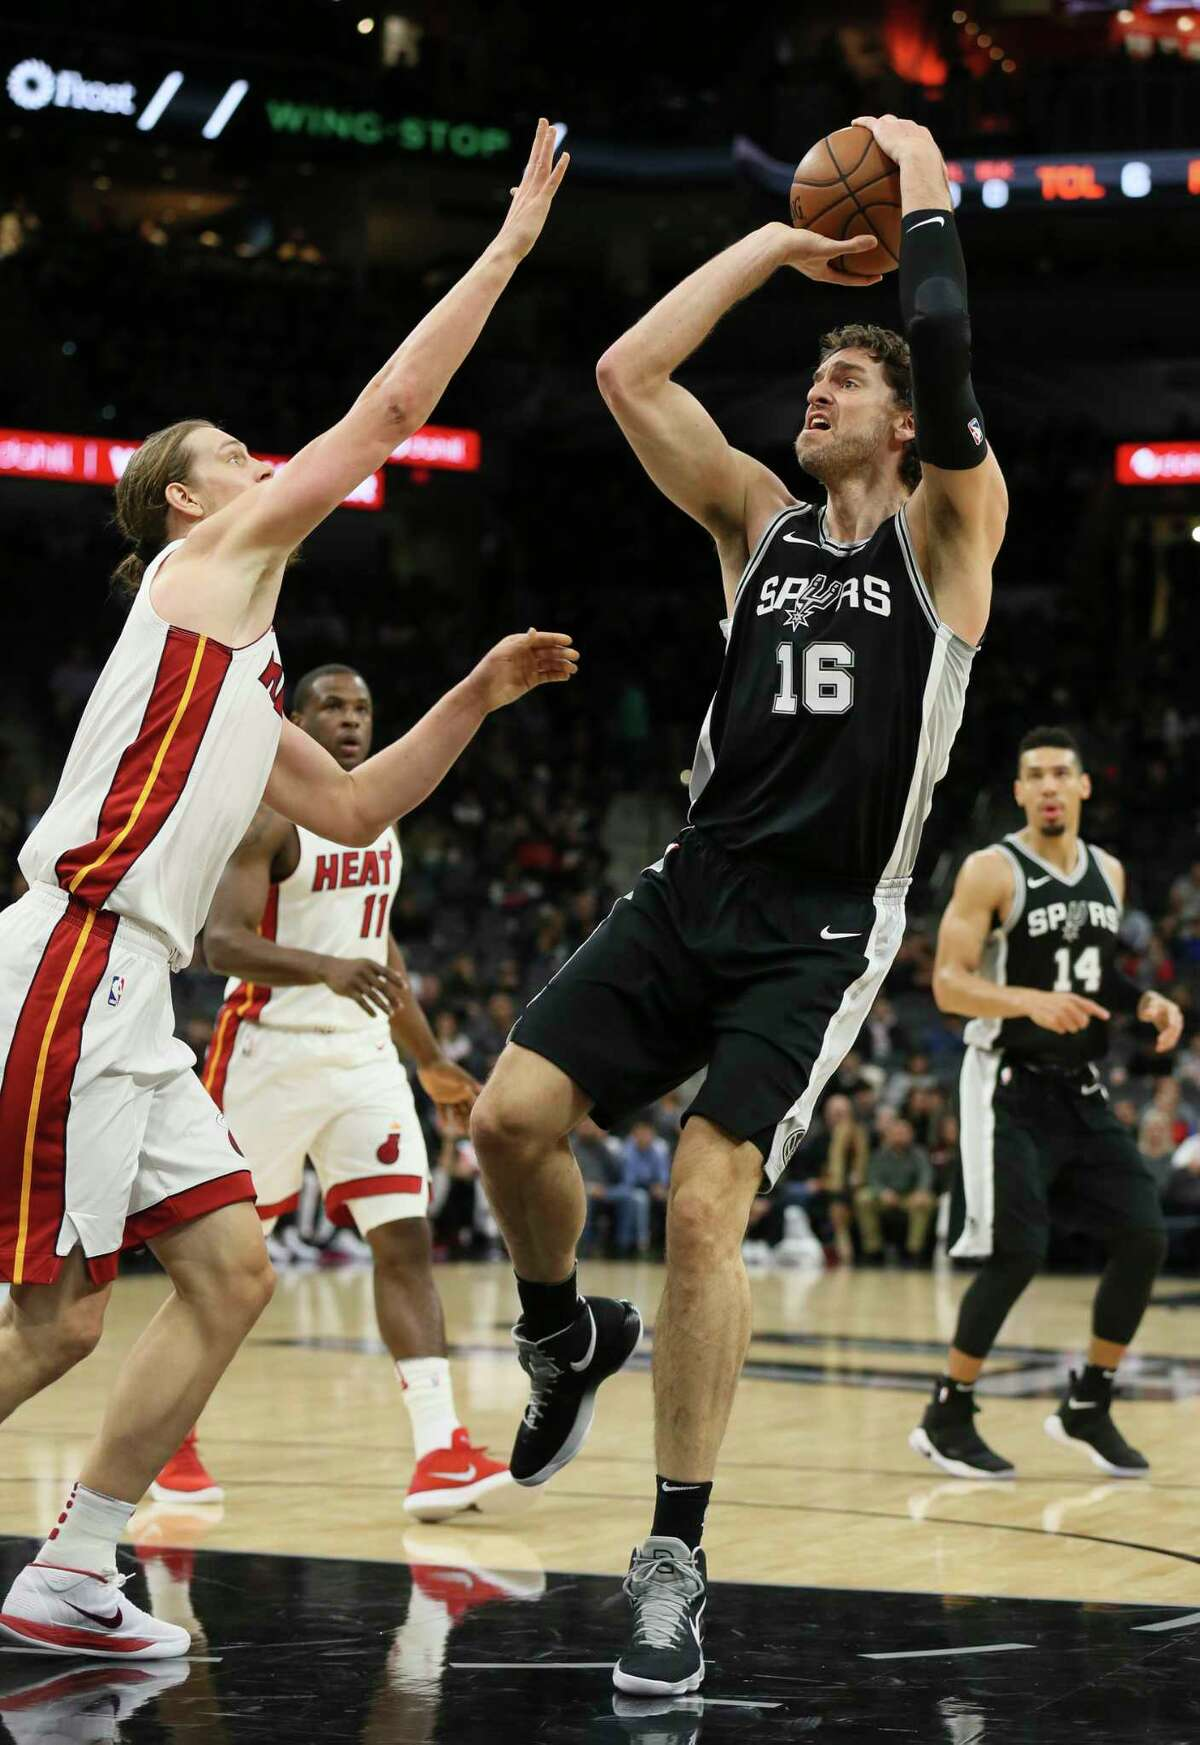 Spurs' Pau Gasol (16) attempts a shot against Miami Heat's Kelly Olynyk (09) at the AT&T Center on Wednesday, Dec. 6, 2017.